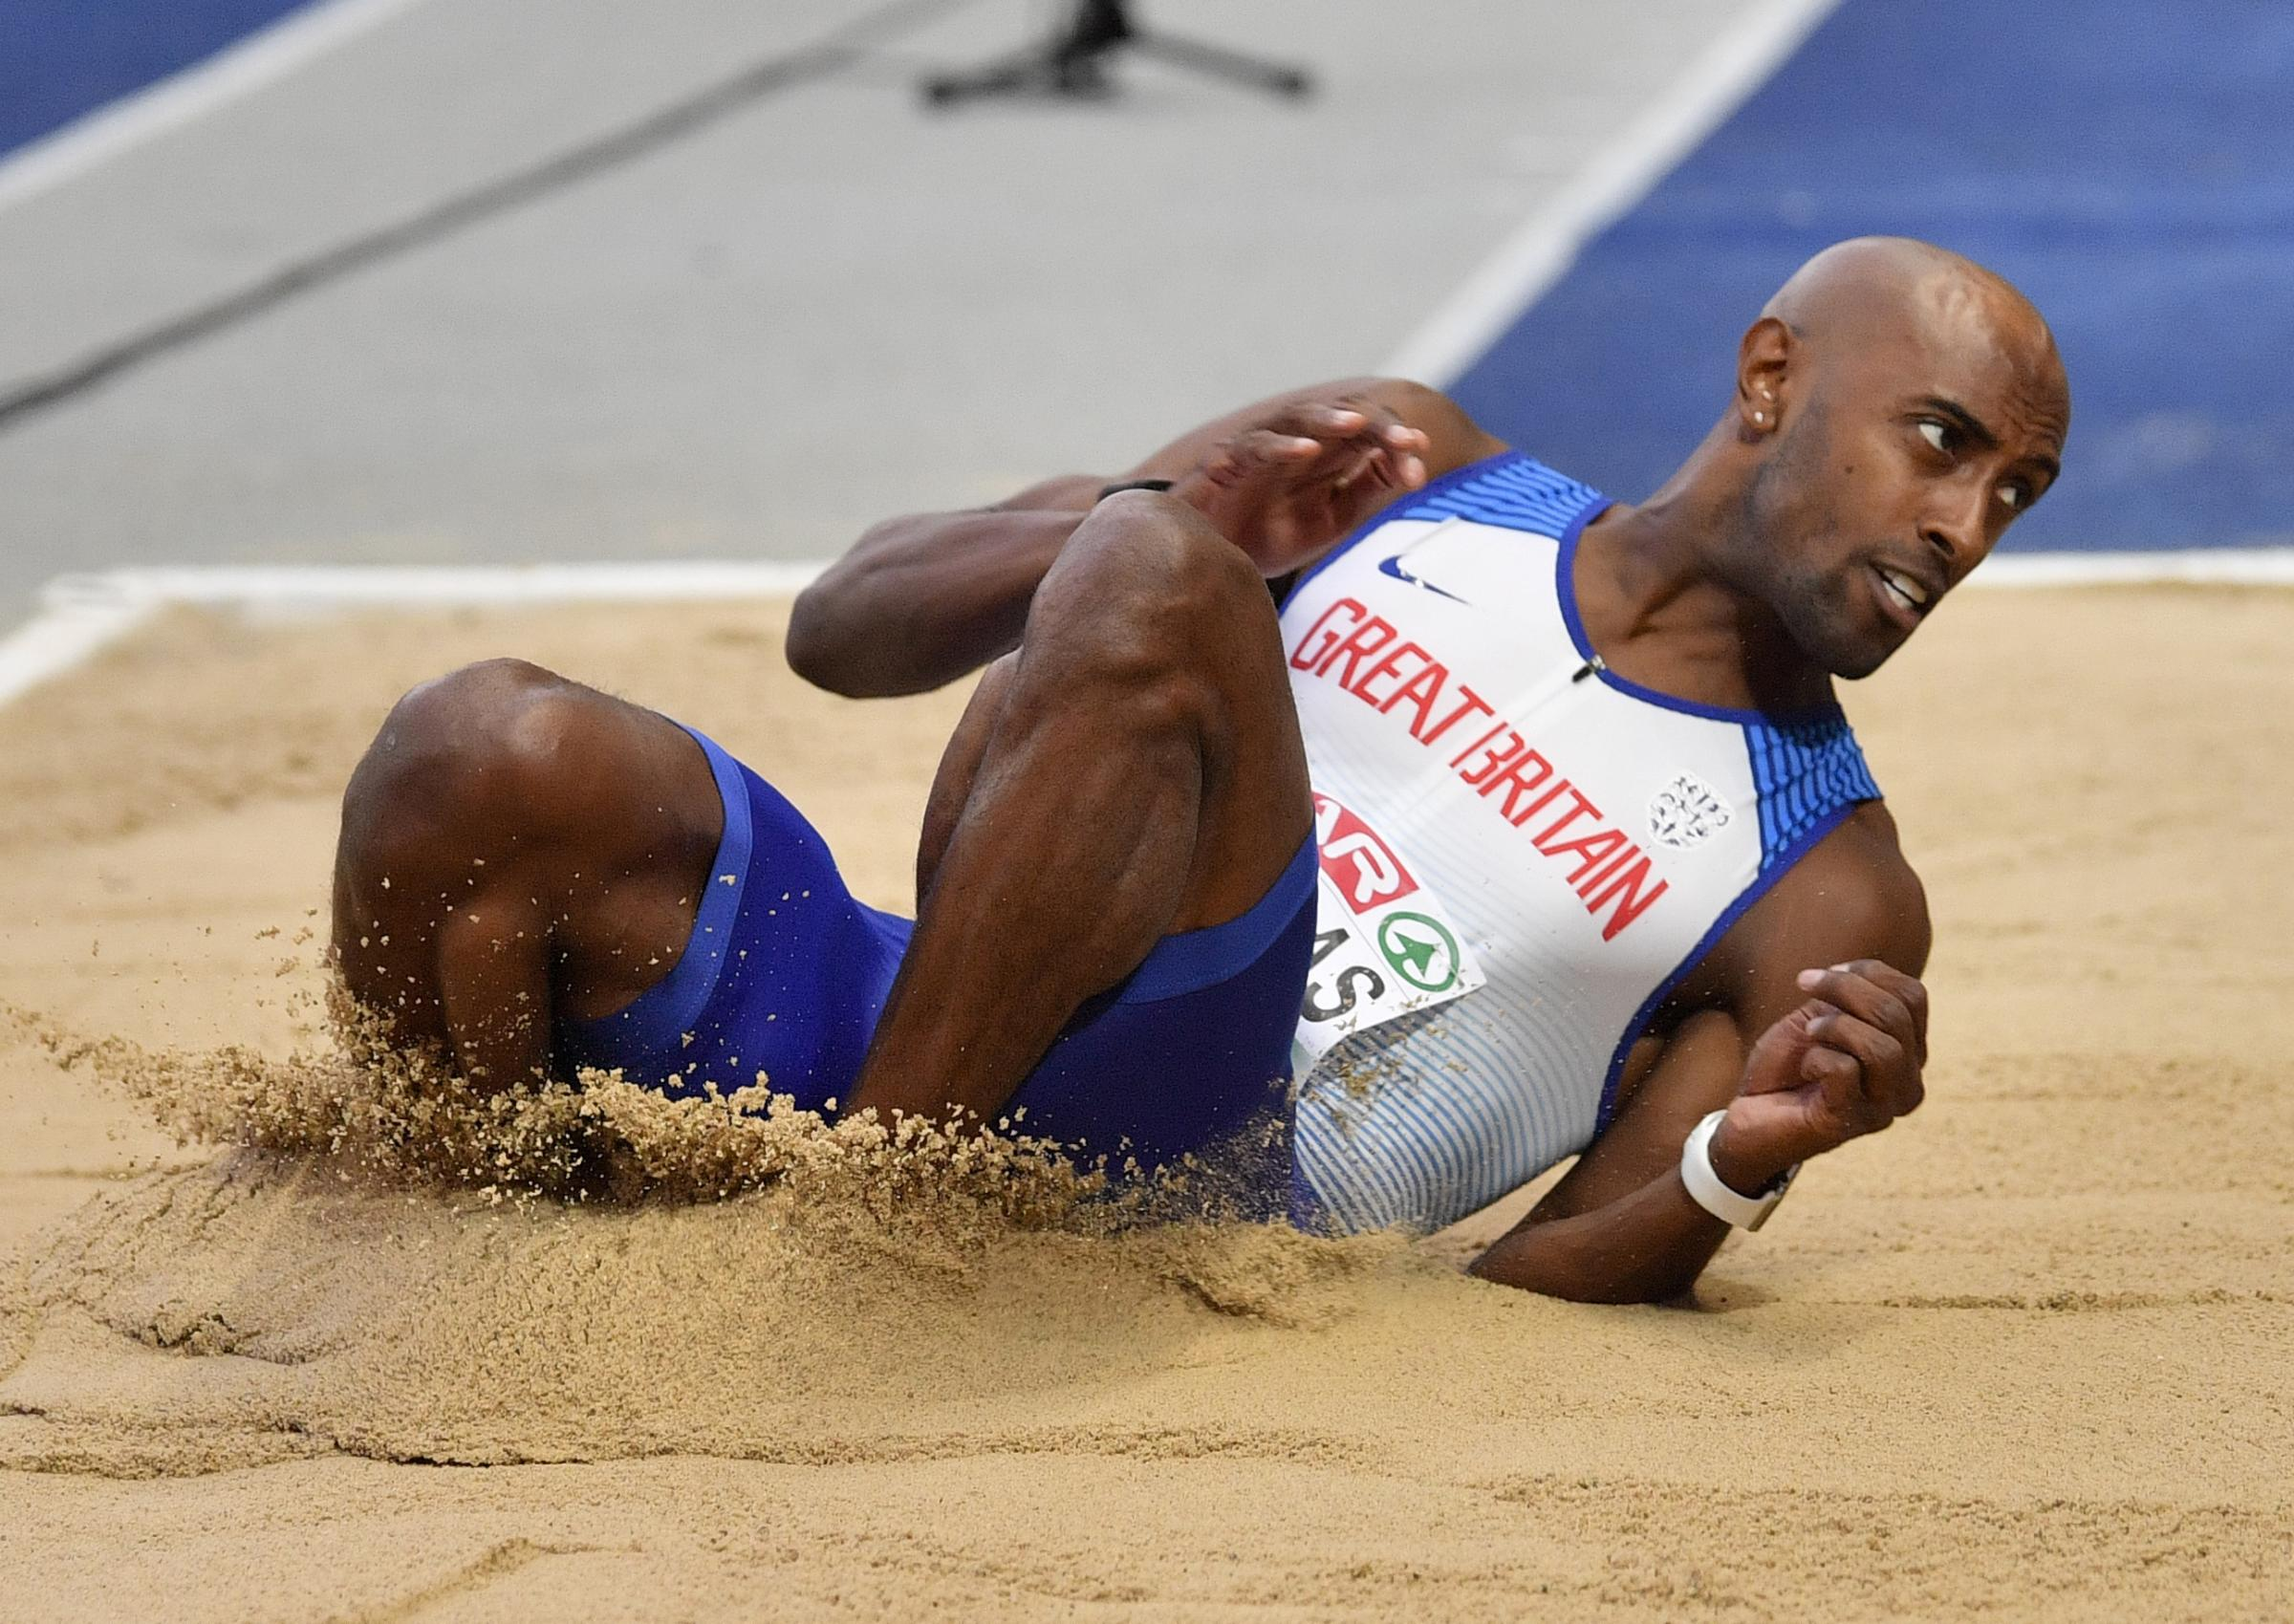 Oxford City AC triple jumper Nathan Douglas is hoping to land an eighth national title at the British Indoor Championships this weekend Picture: AP Photo/Martin Meissner